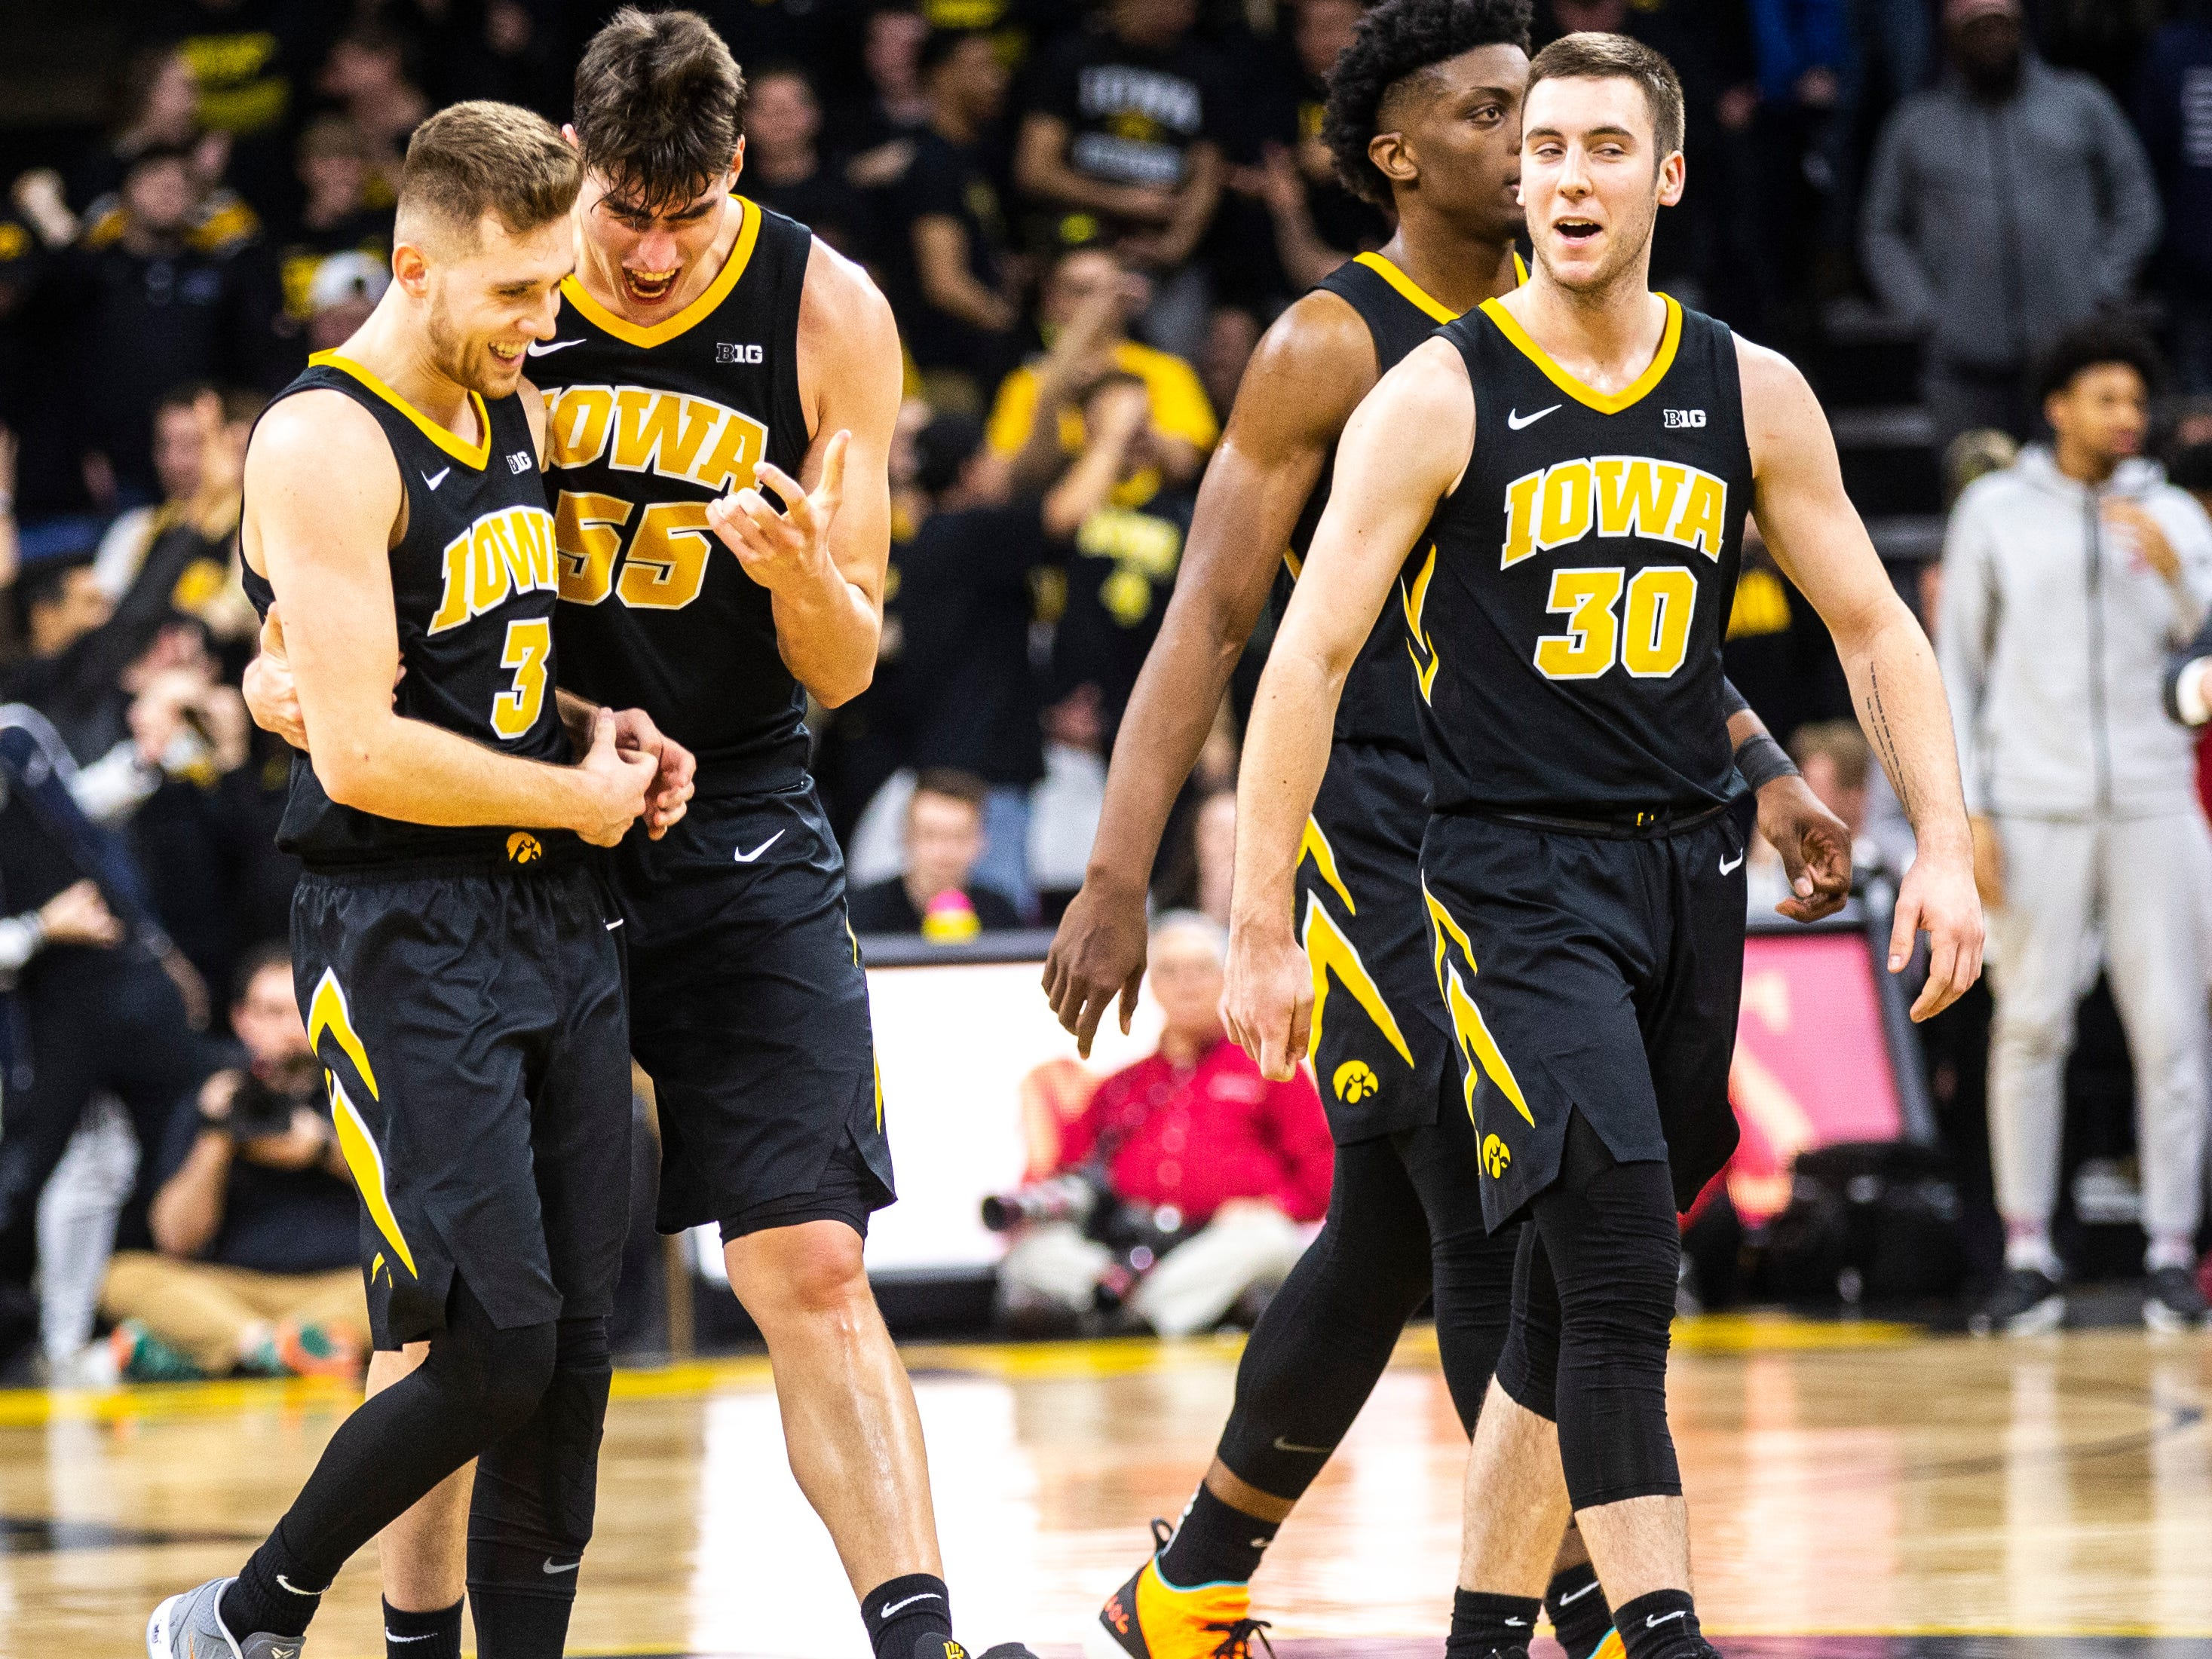 Iowa guard Jordan Bohannon (3) is embraced by Luka Garza (55) while Connor McCaffery (30) and Tyler Cook, second from right, celebrate during a NCAA Big Ten Conference men's basketball game on Friday, Feb. 22, 2019 at Carver-Hawkeye Arena in Iowa City, Iowa.